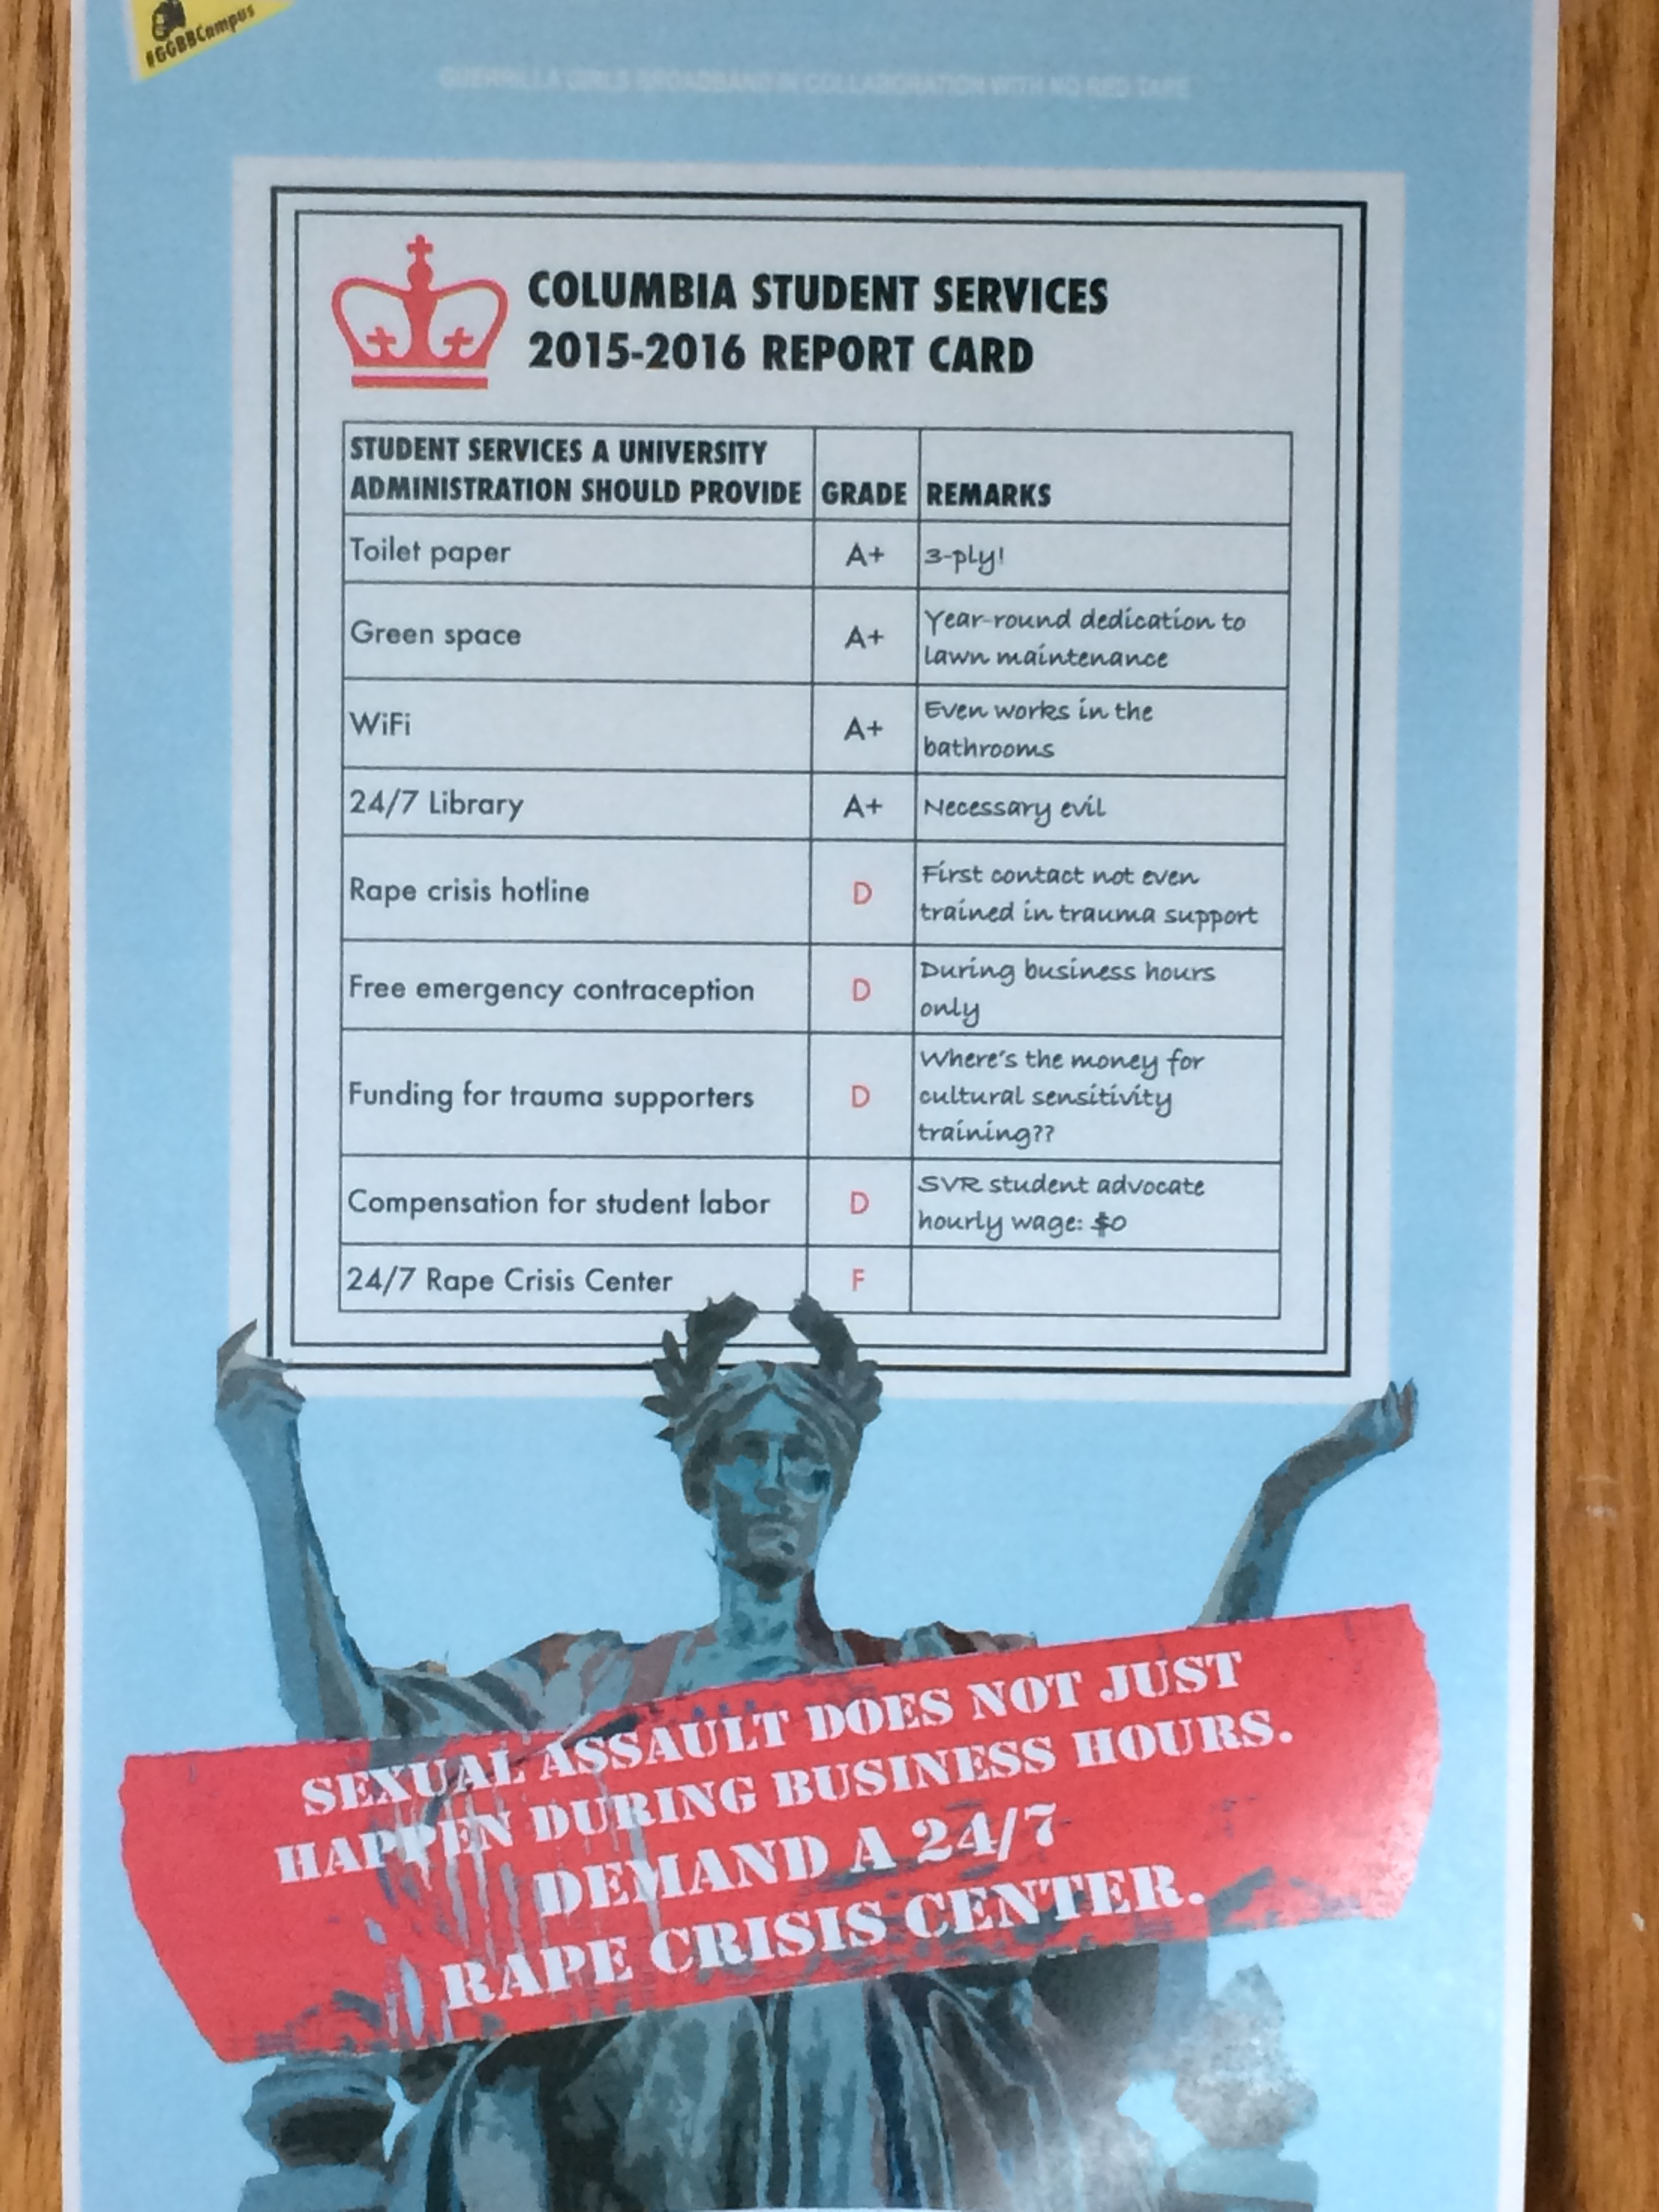 Columbia's 2015-2016 report card